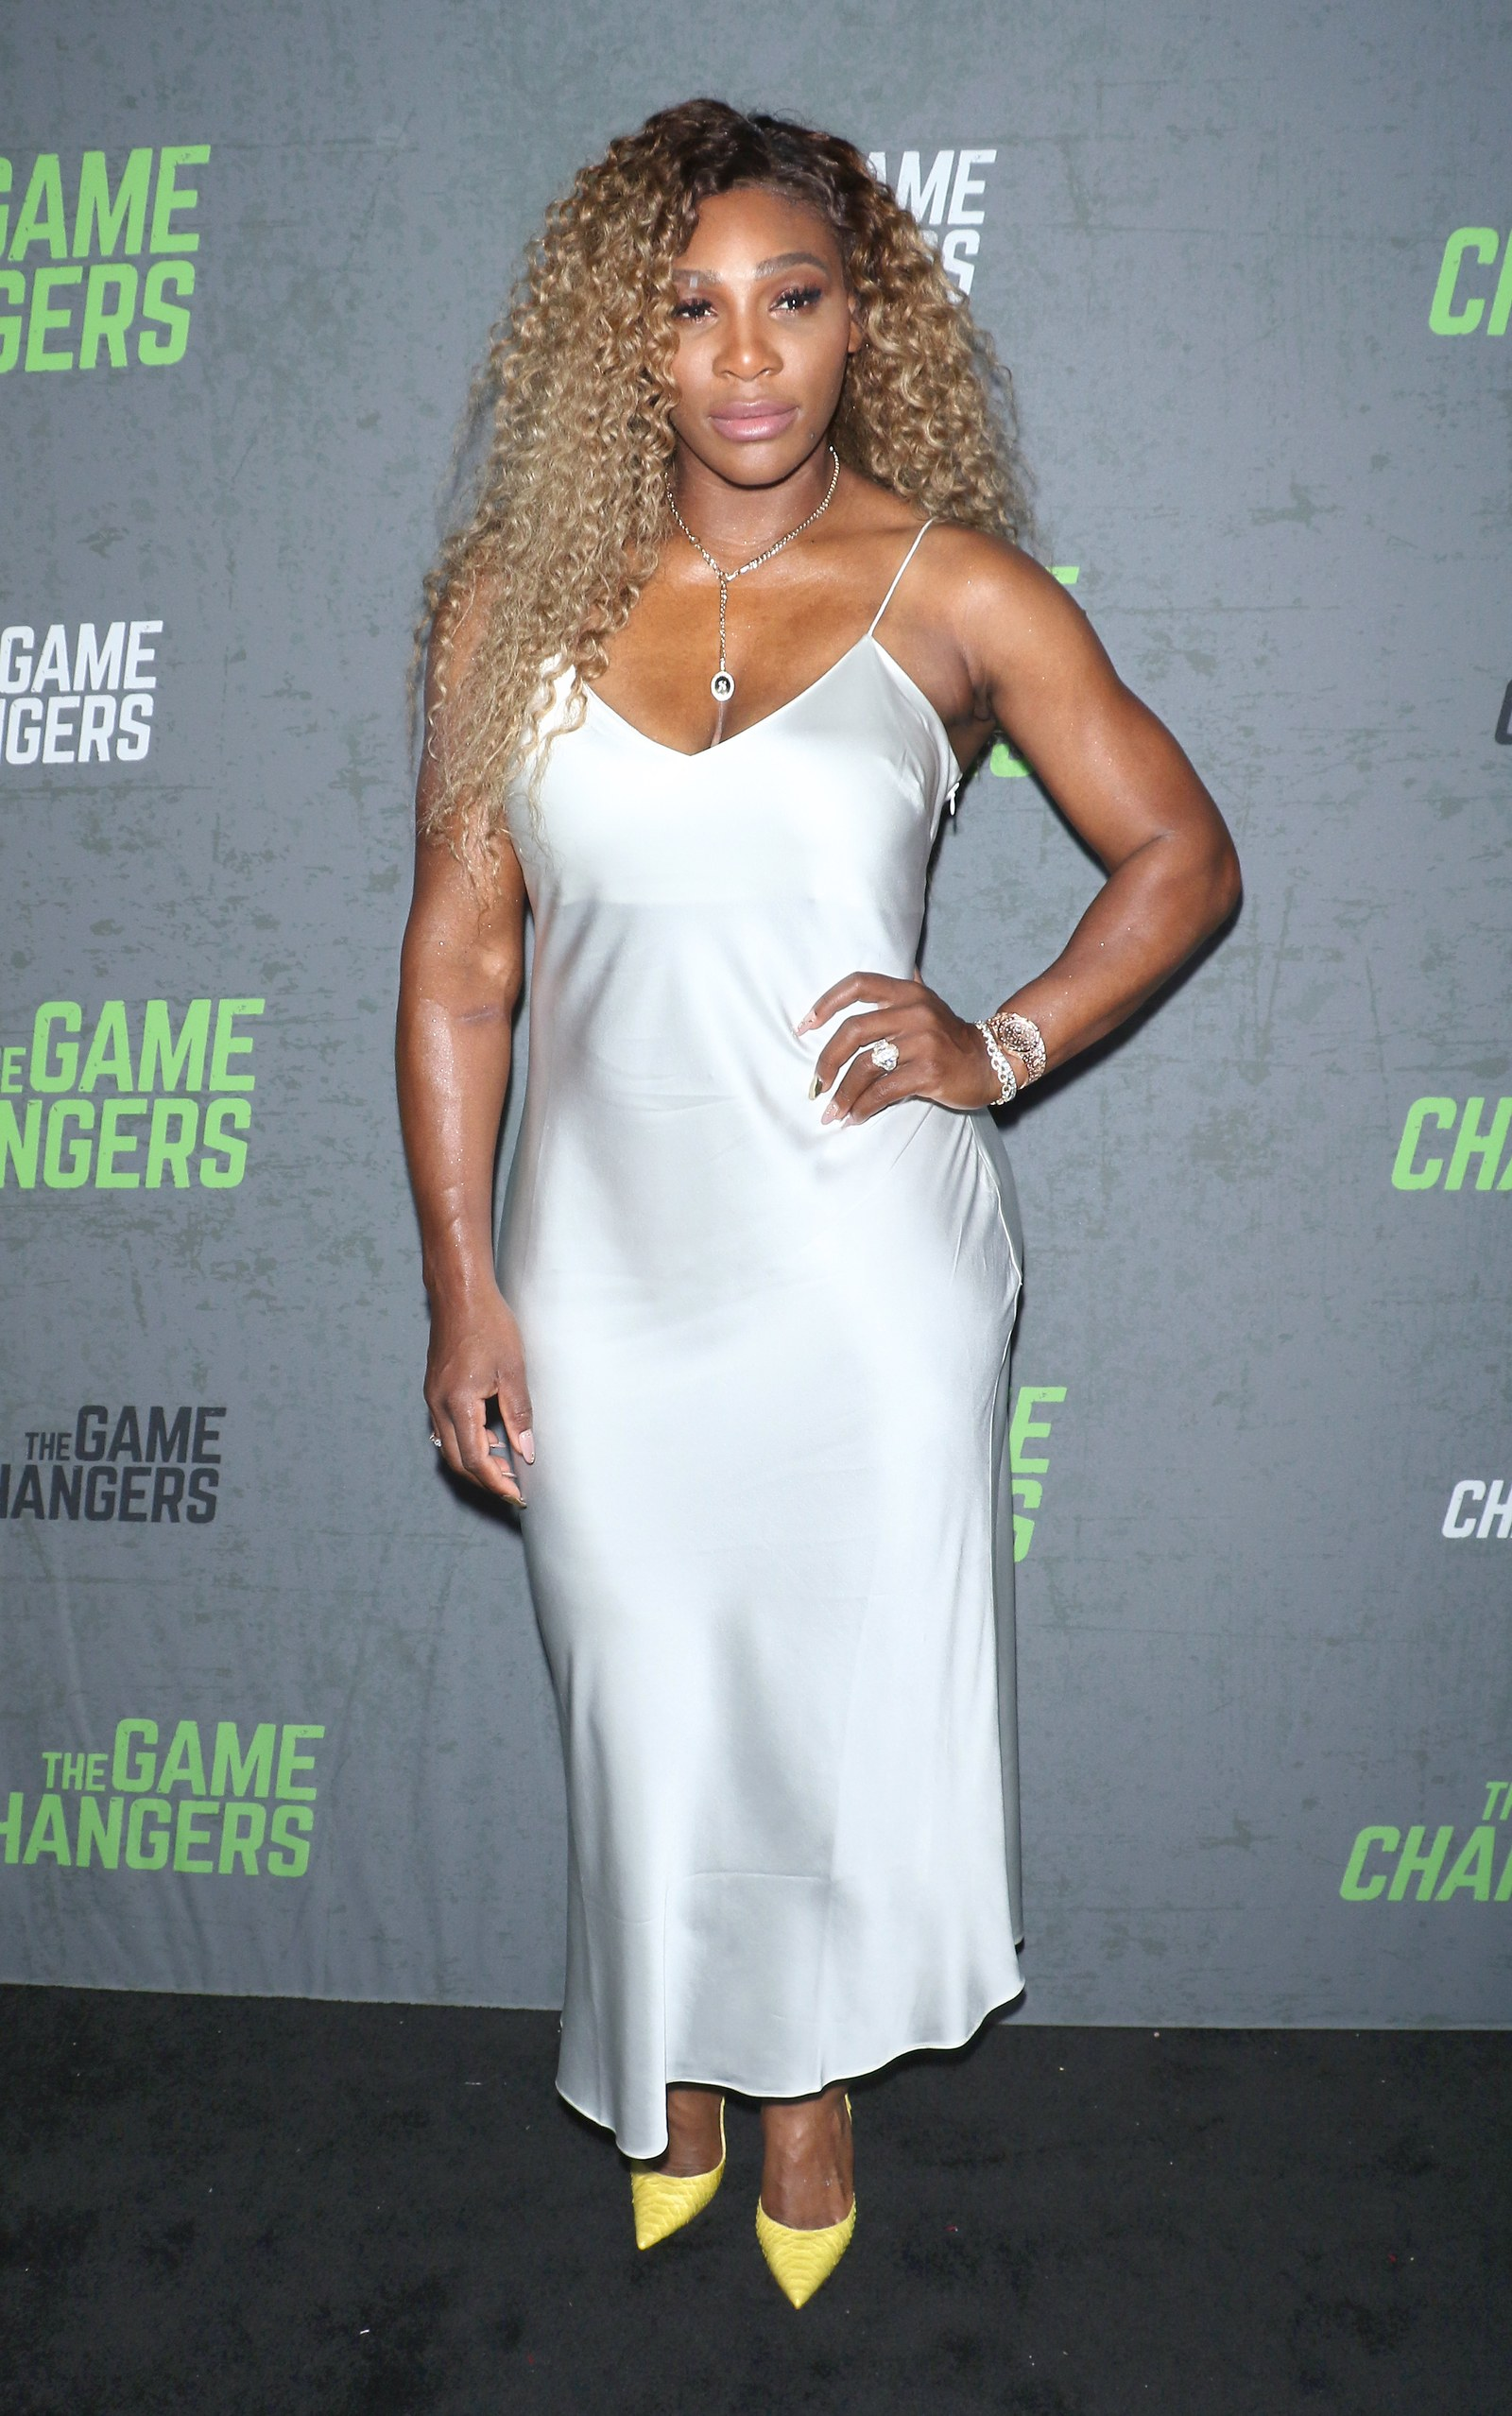 Serena Williams outfit Serena Williams wears a slip dress to a TV premiere